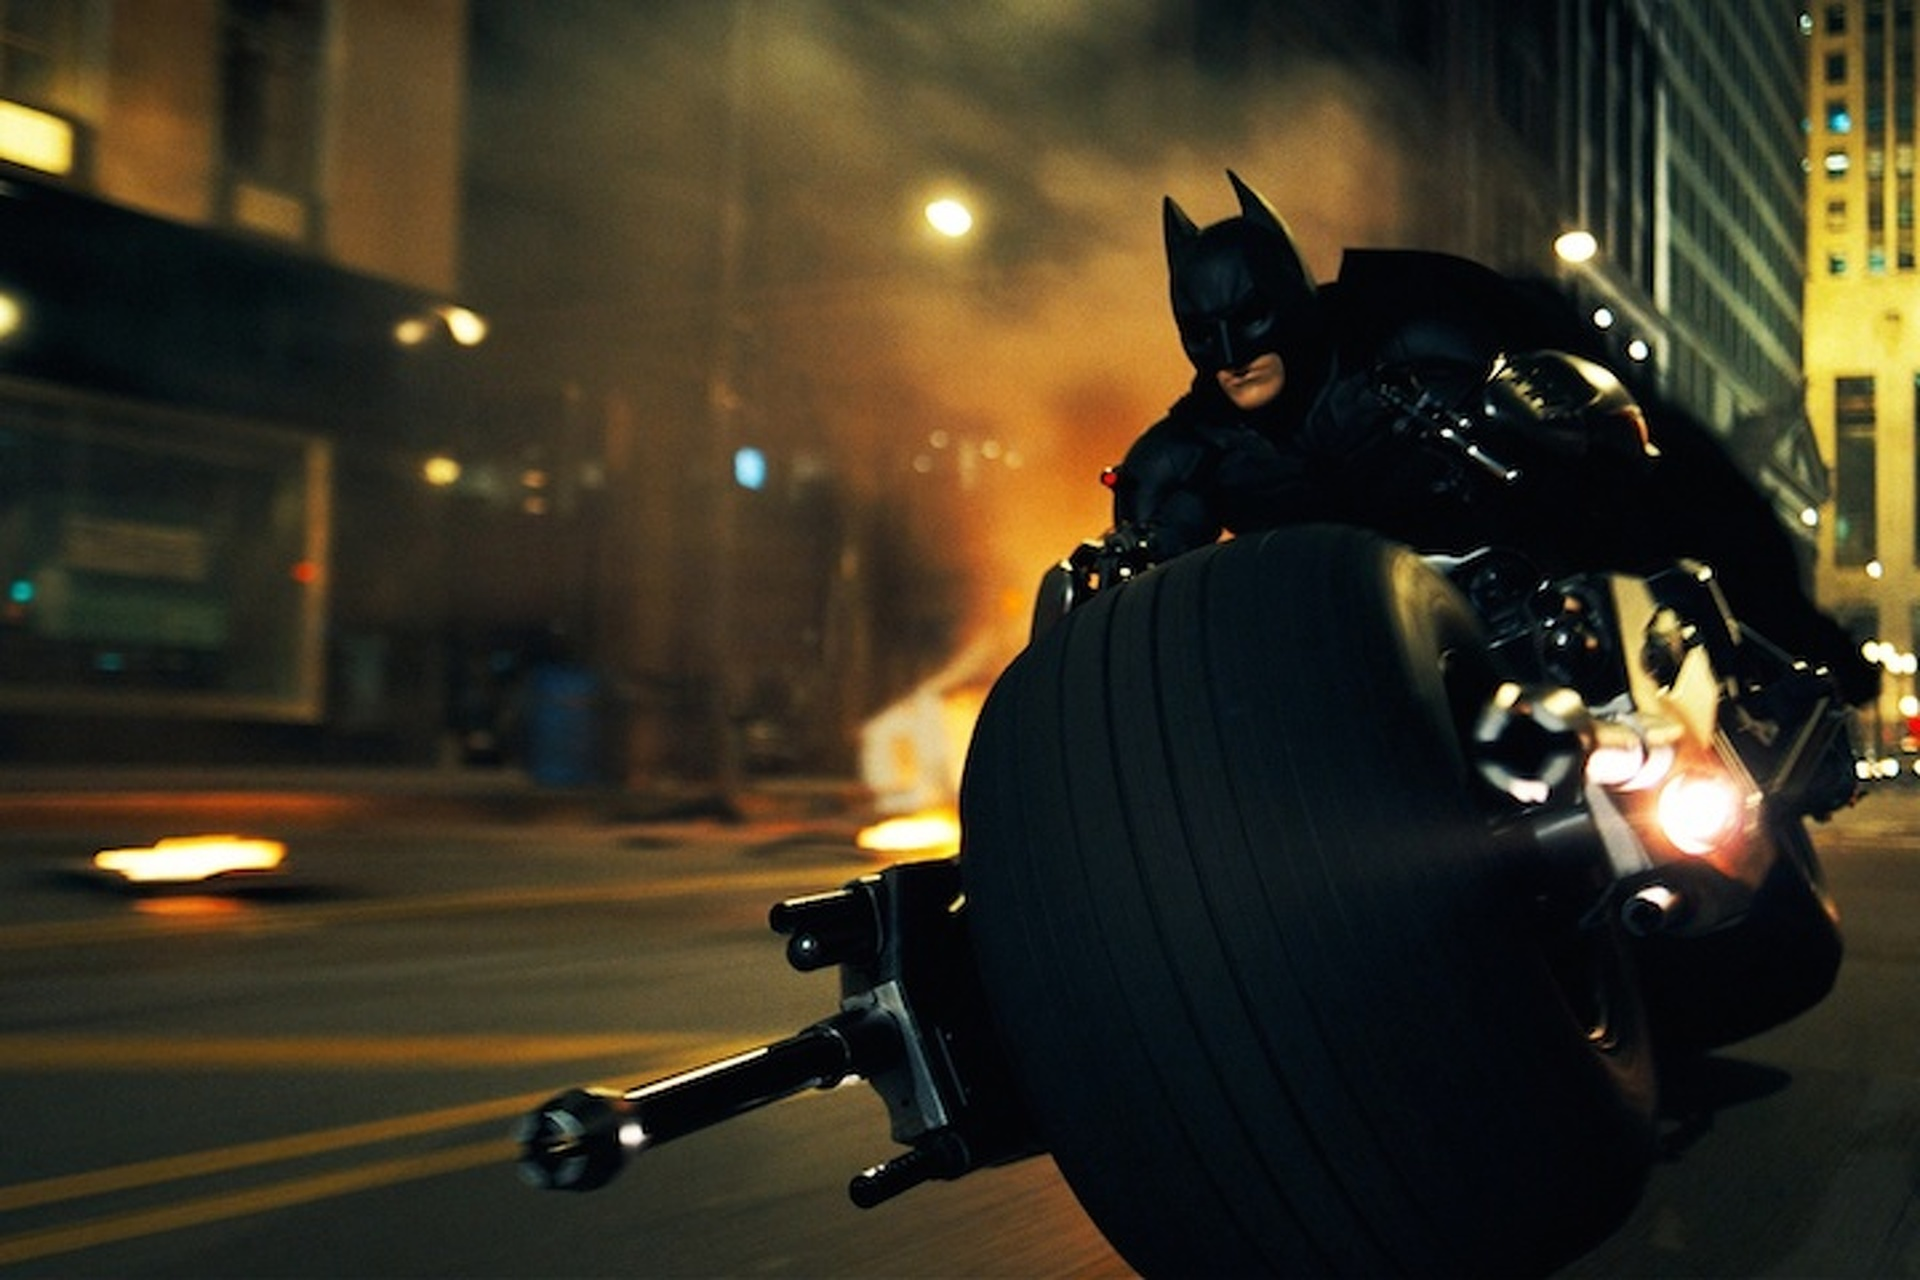 History of the Batcycle: Two-Wheeled Justice from DC